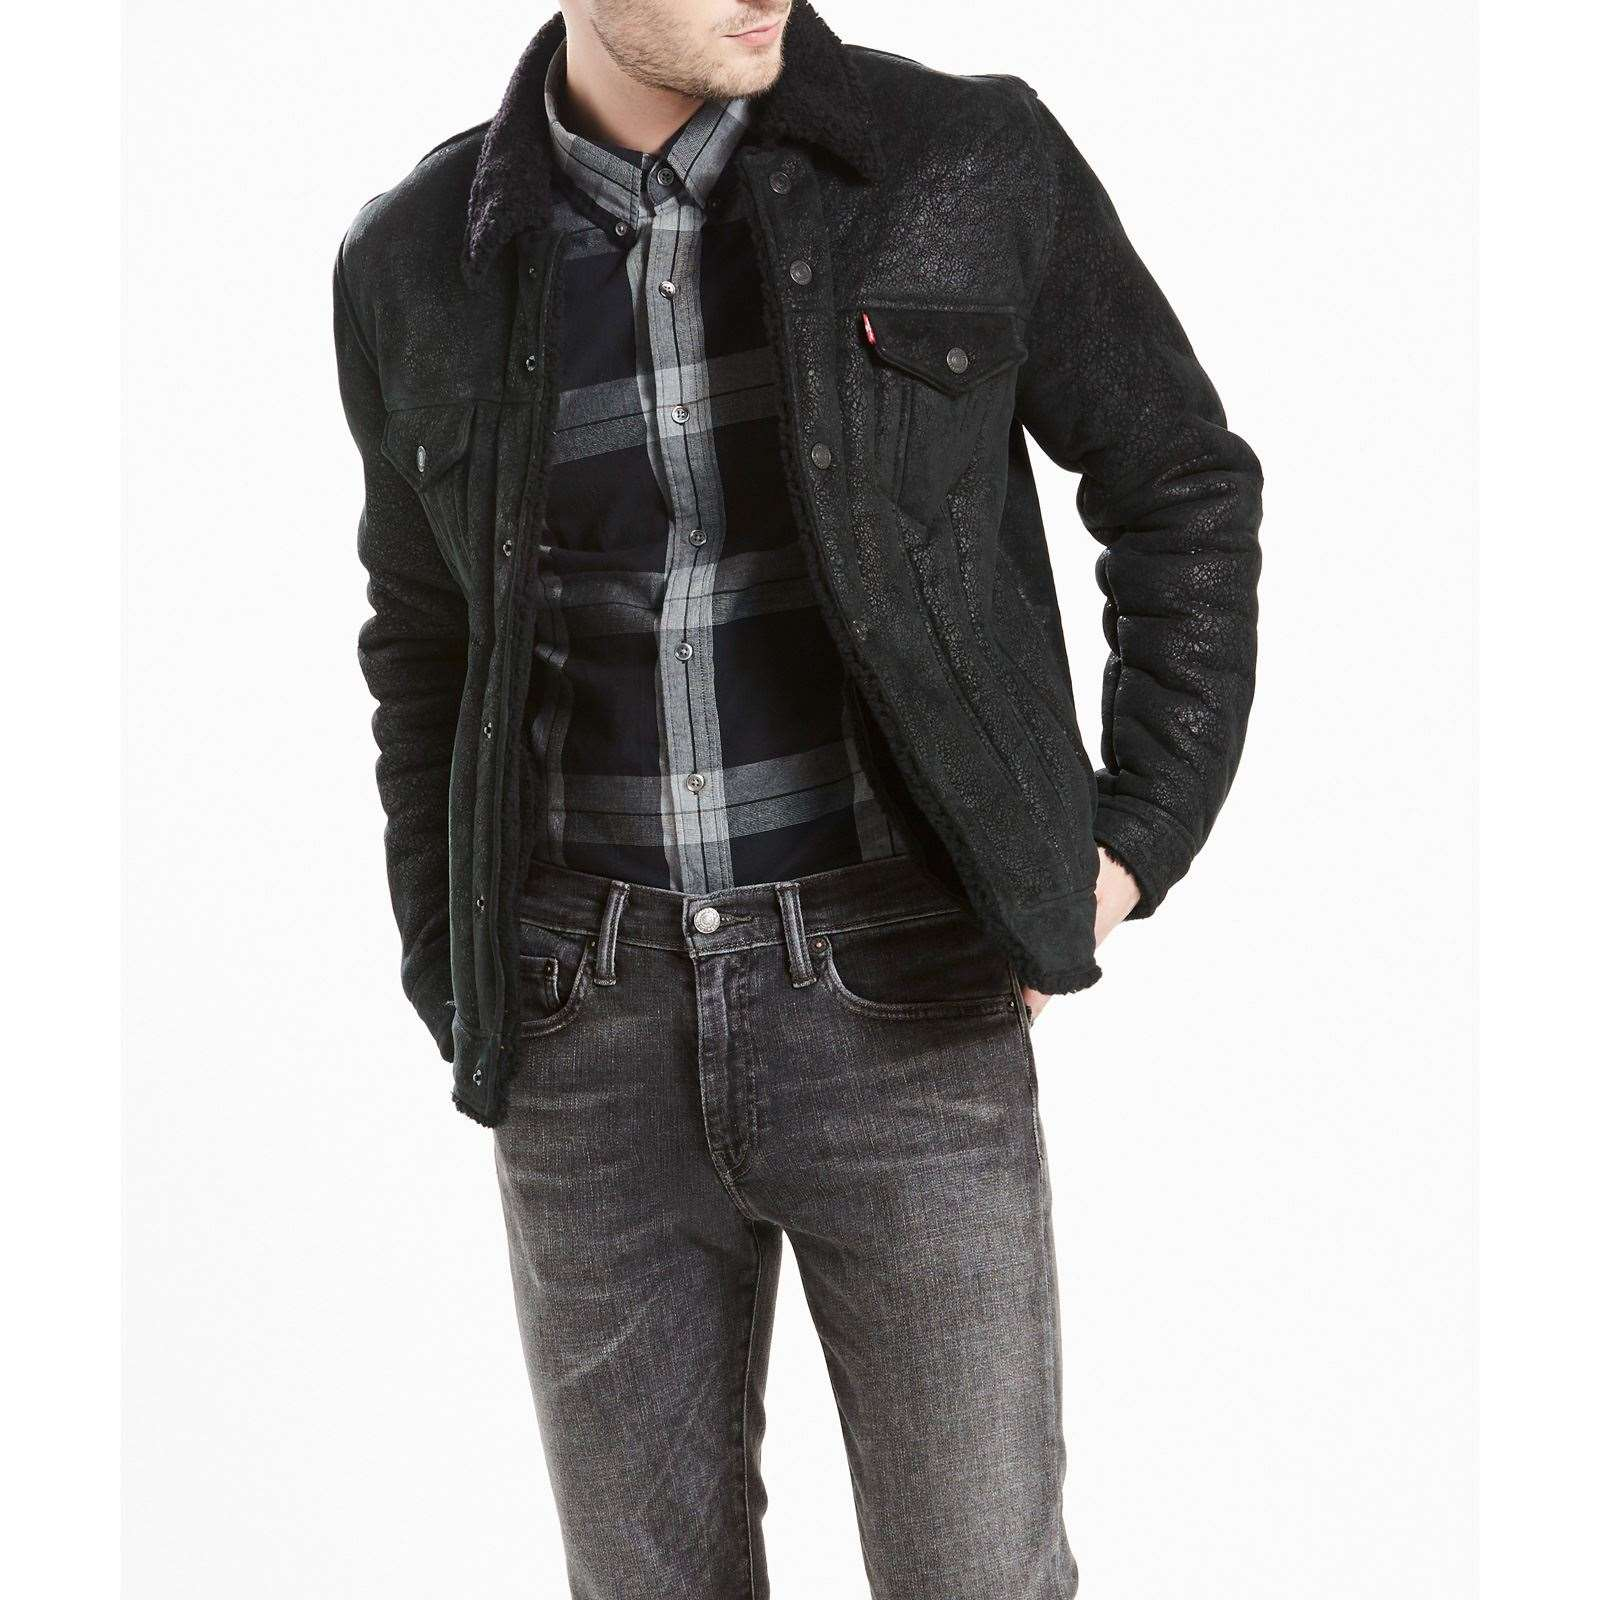 599cb0d85912e Levi s The Shearling Trucker Jacket - Veste en cuir - anthracite ...